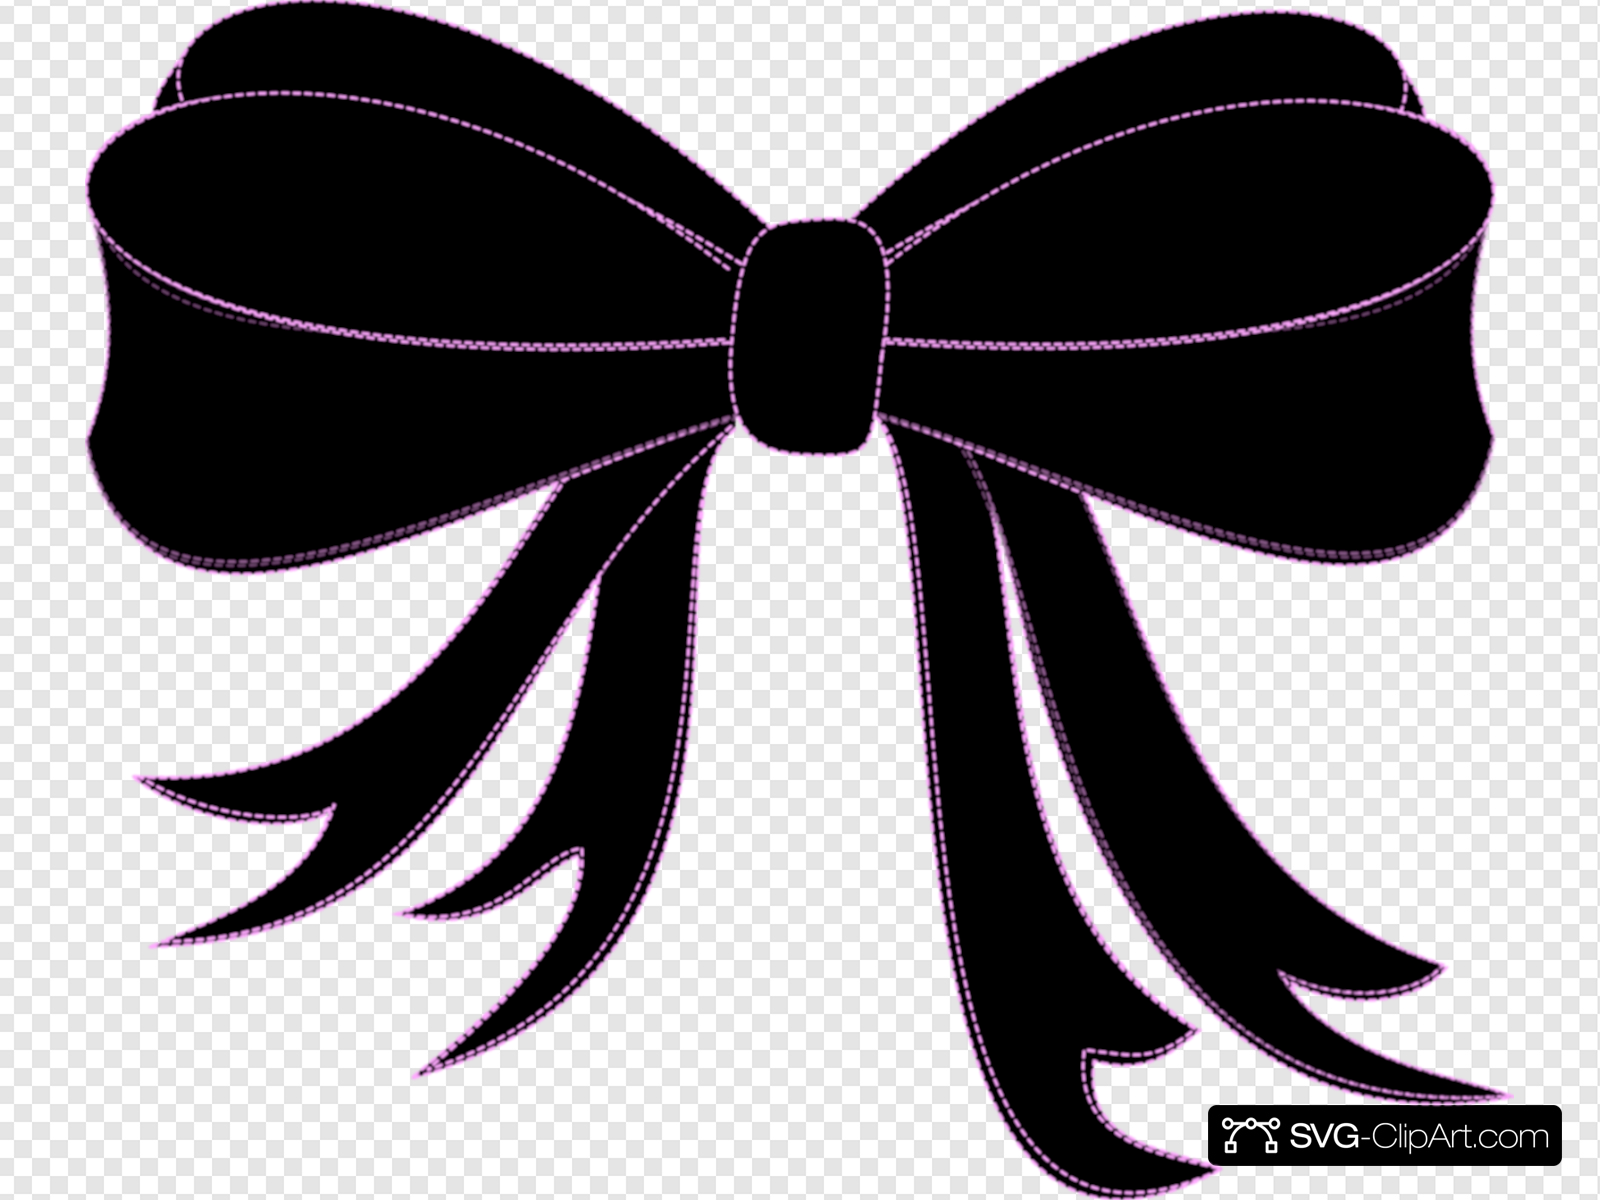 Black Bow Ribbon Clip art, Icon and SVG.